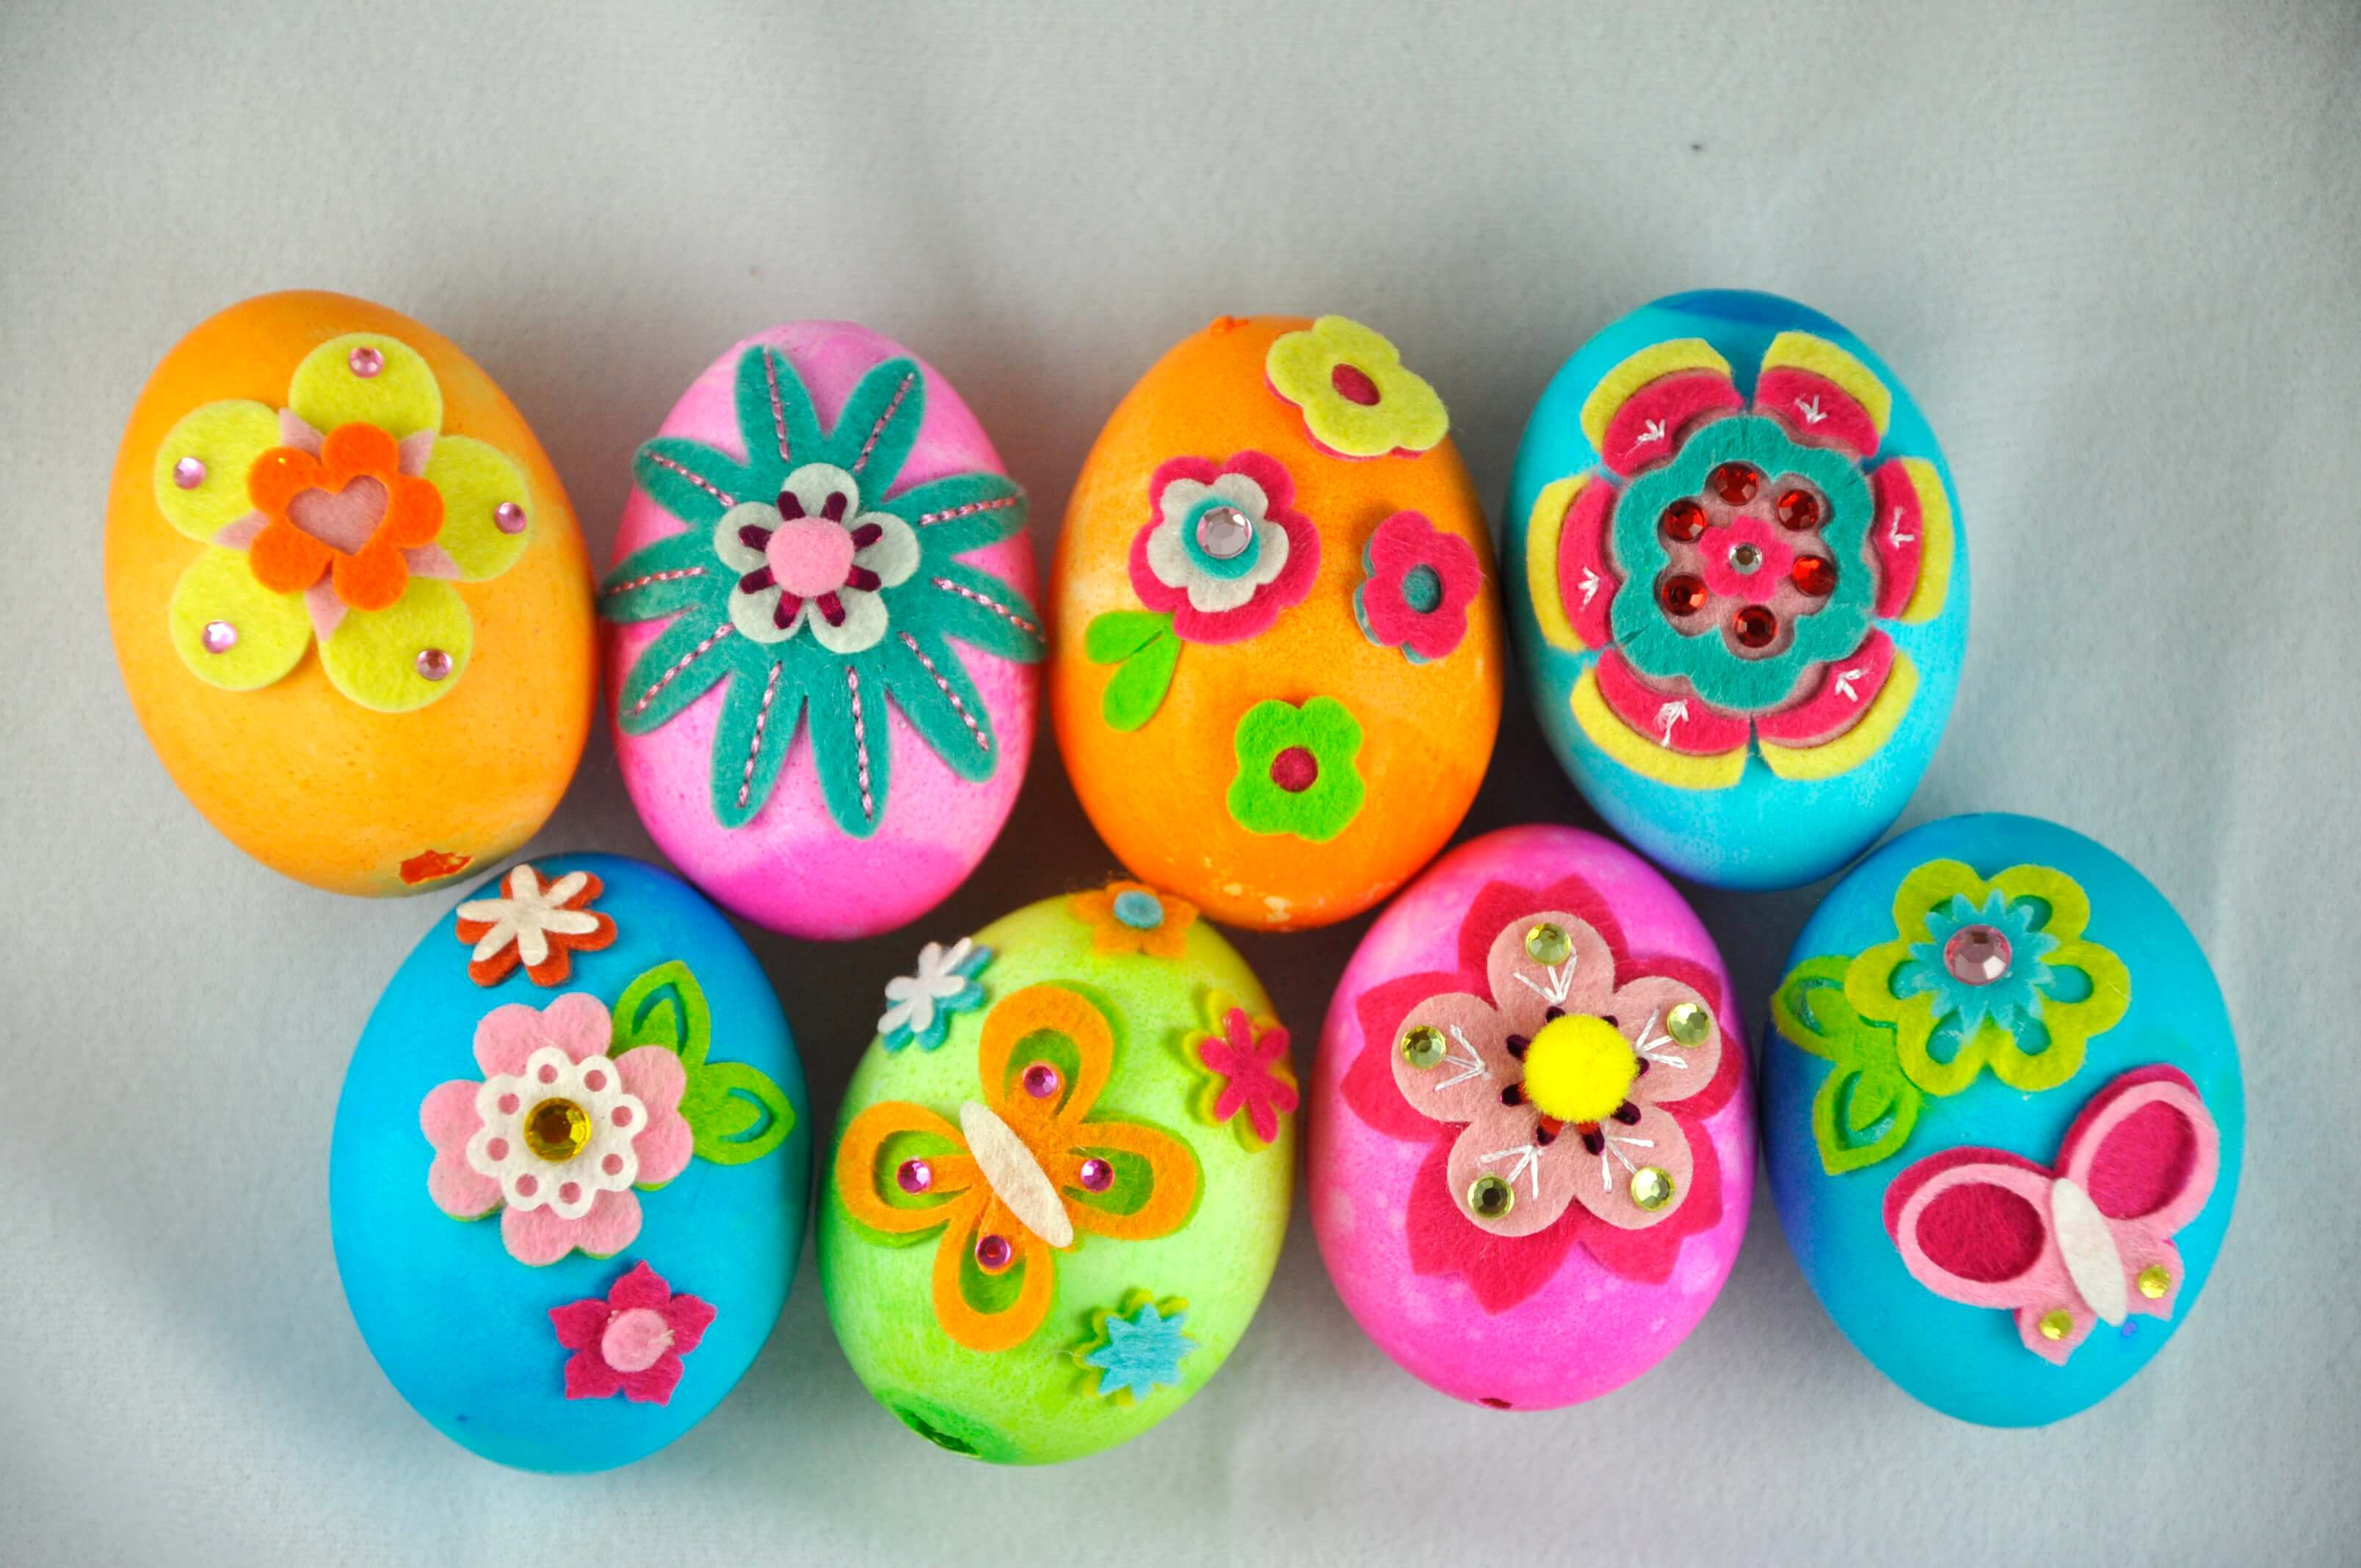 Colorful painting options for outdoor egg hunts